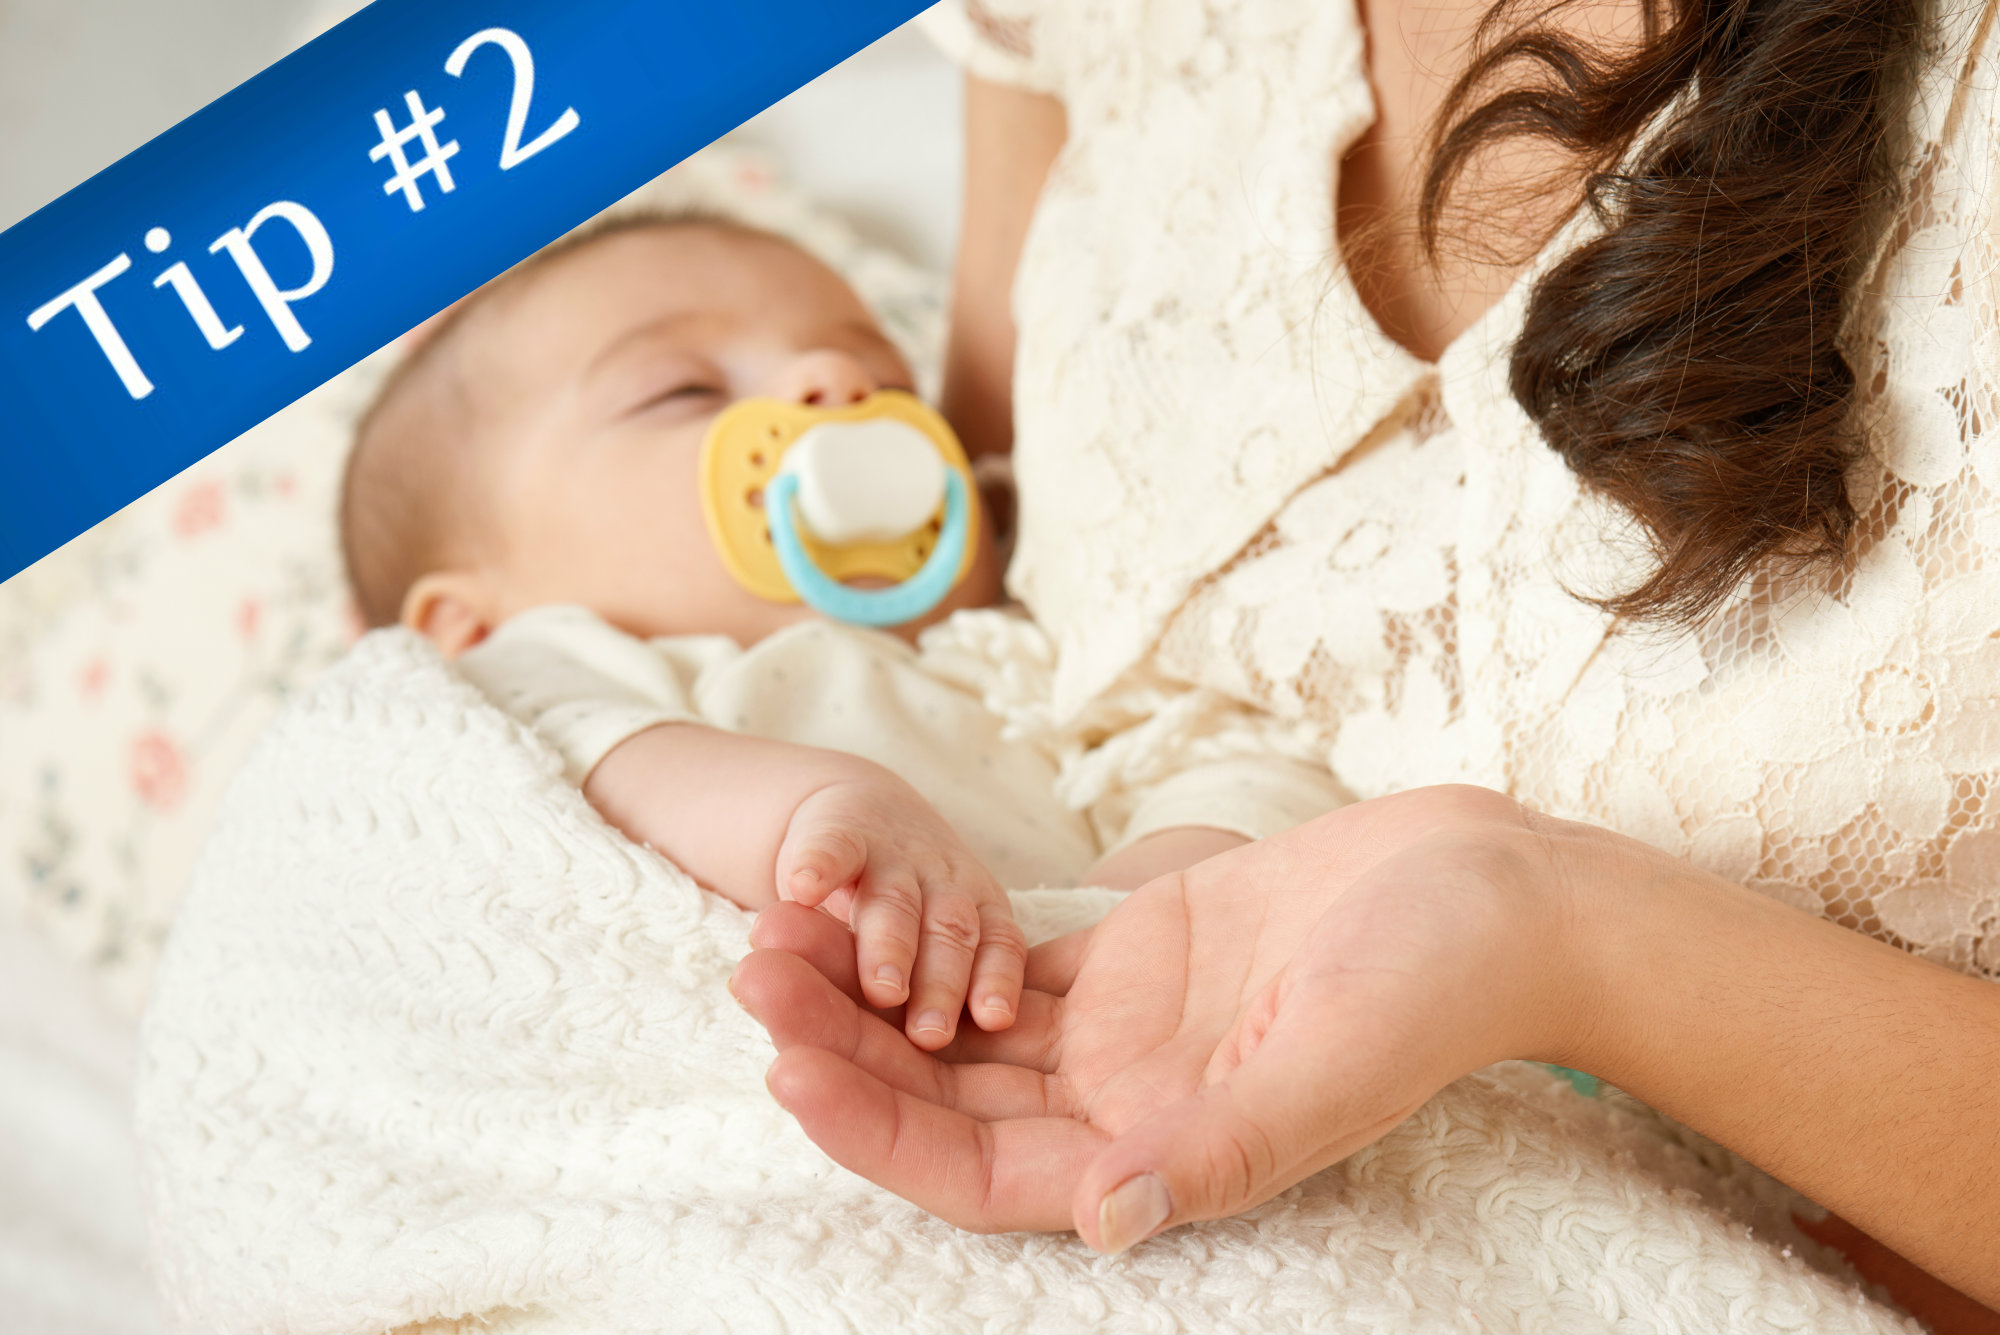 Establishing a healthy bedtime routine can help teach a child healthy sleep habits when they grow up.